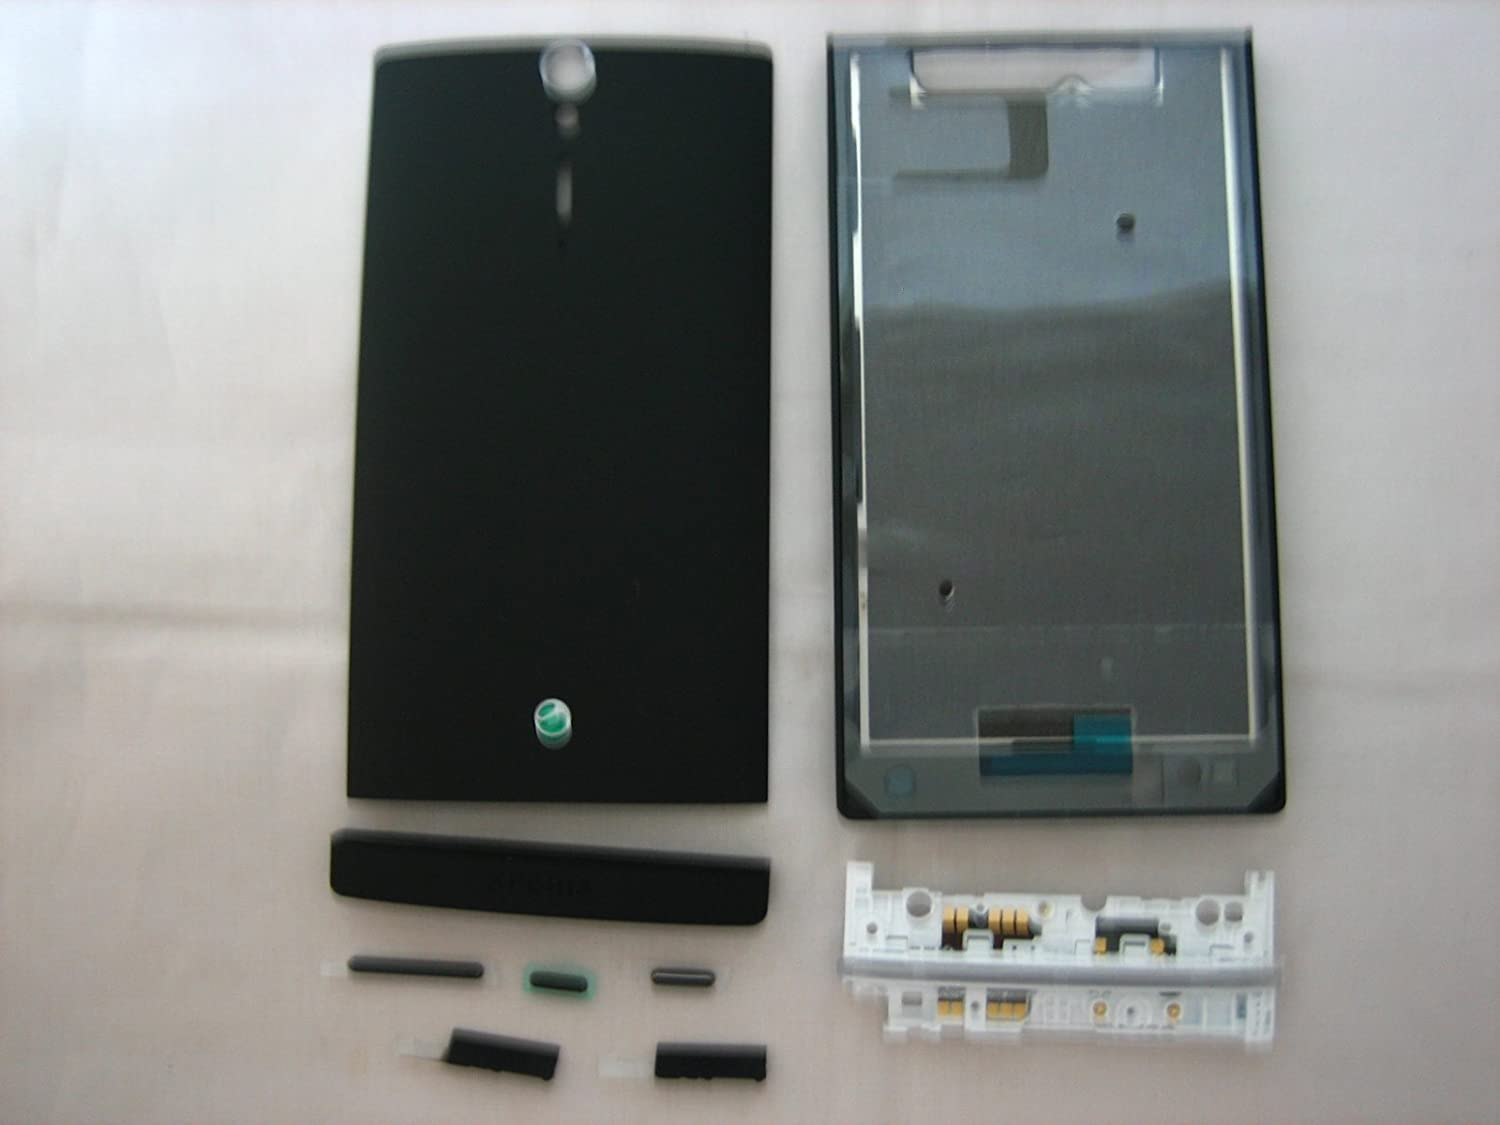 Sony-Xperia-S-LT26i-LT26-Black-Cover-Housing-Mobile-Phone-Repair-Part-Replacement